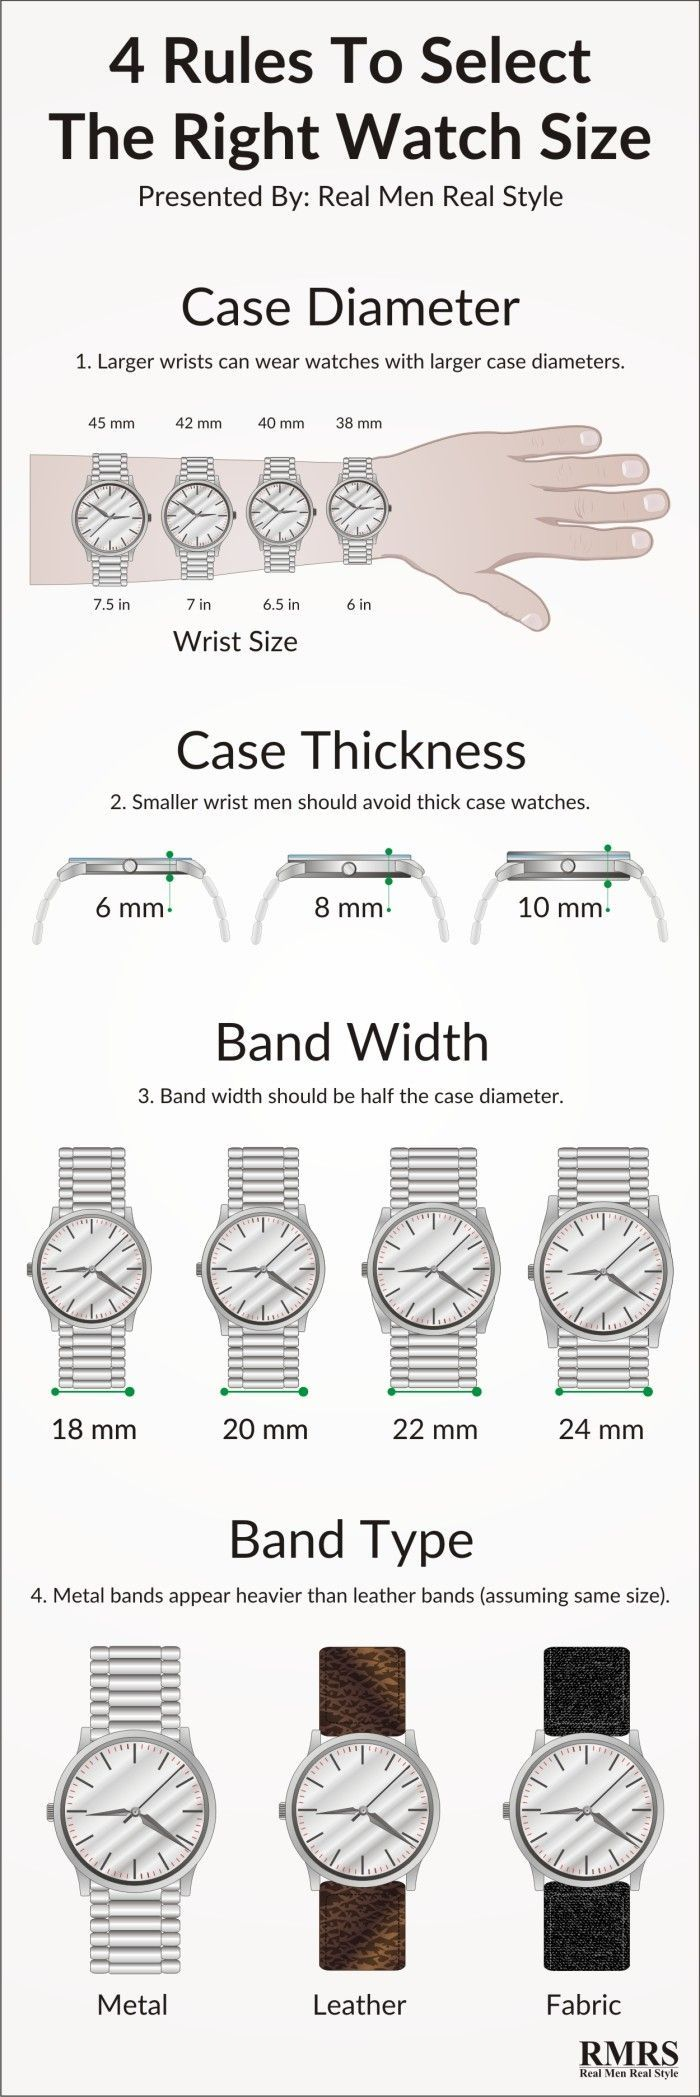 How To Buy The Right Sized Watch http://amzn.to/2rRclxm